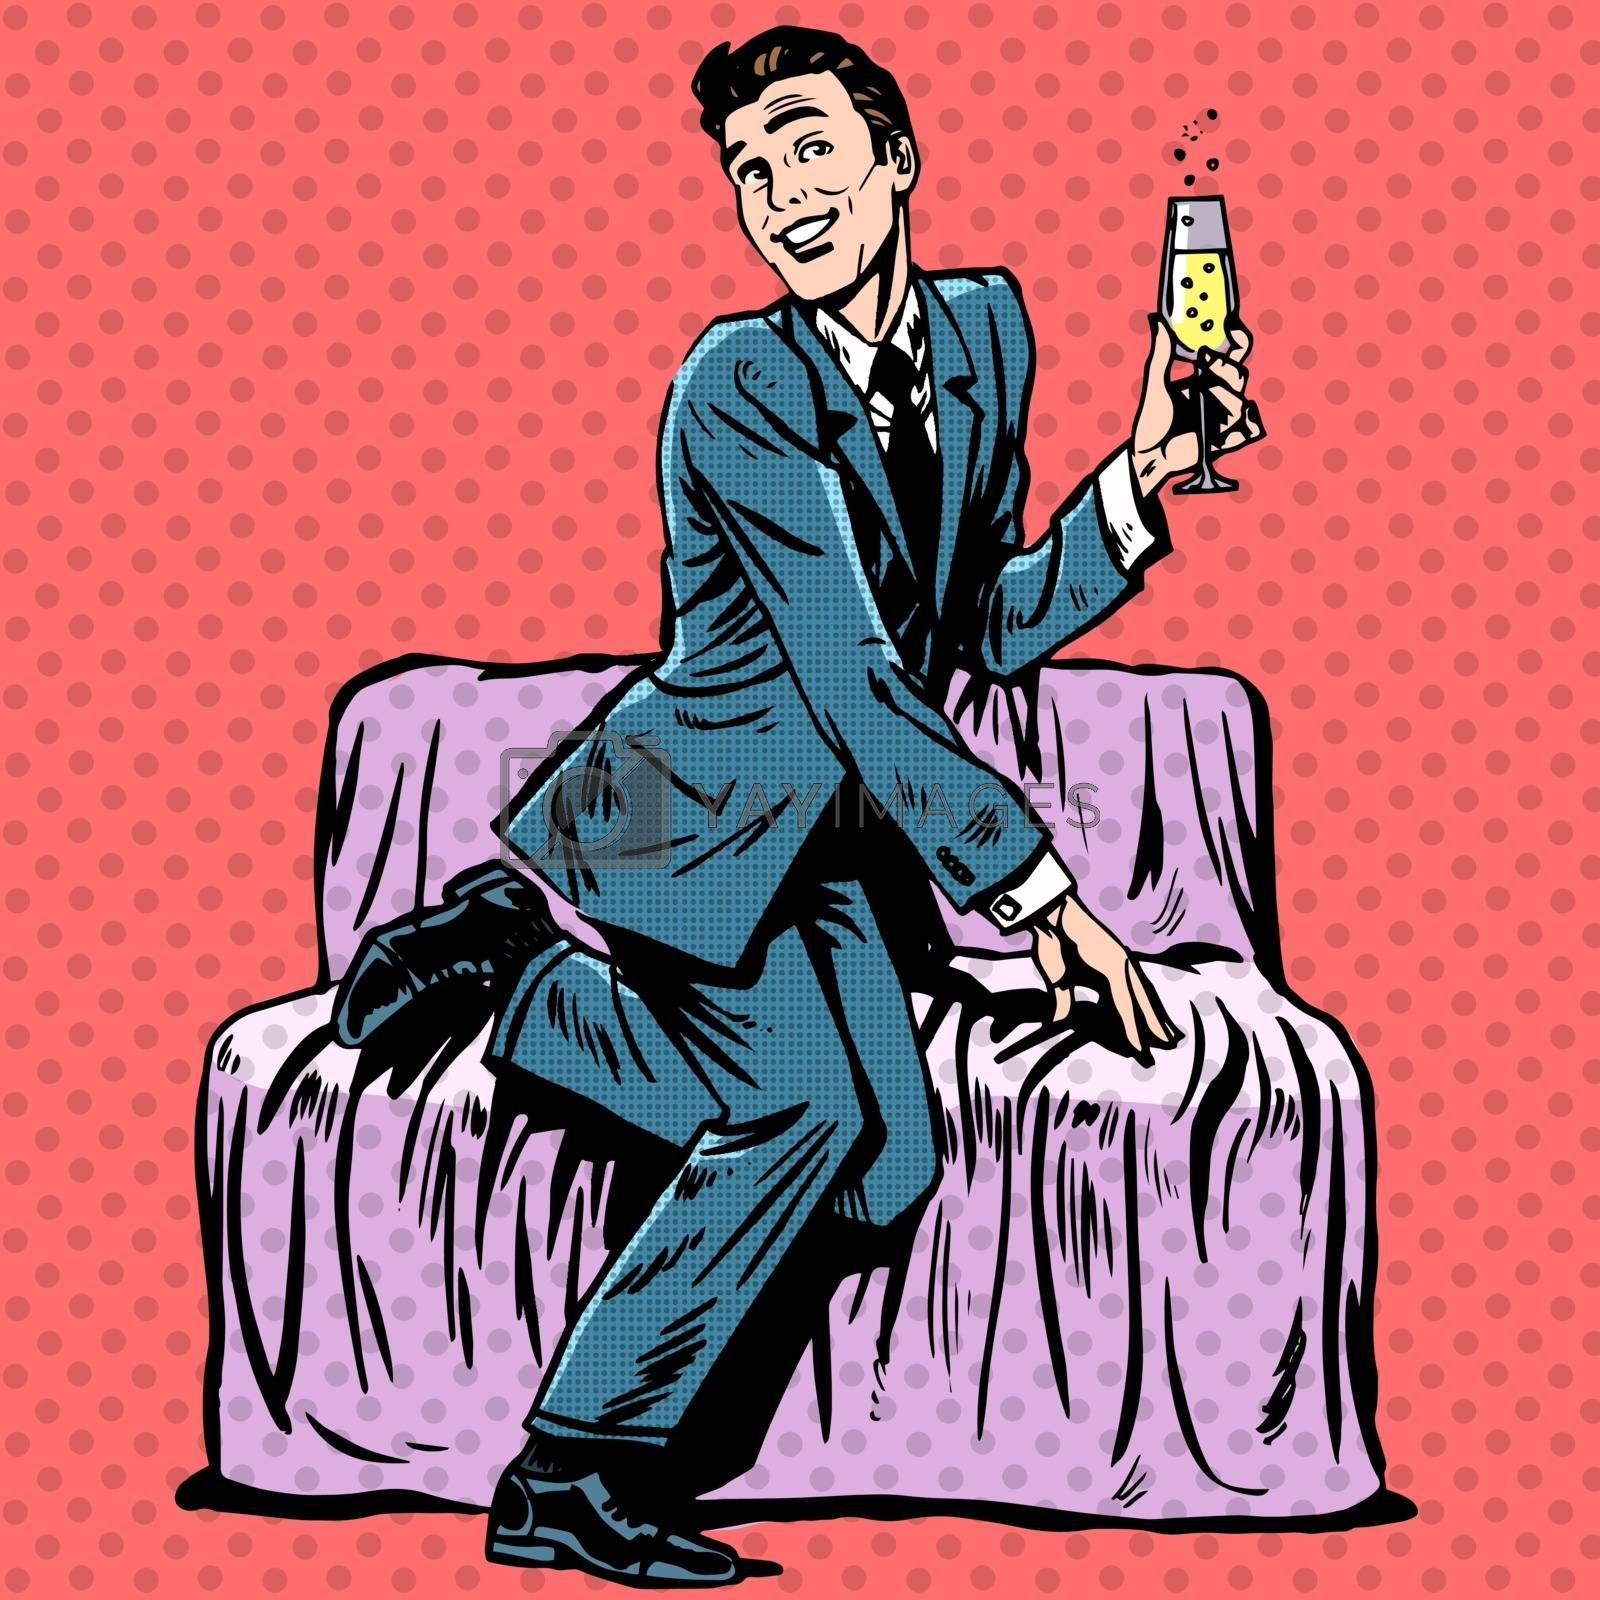 Playful man with a glass of champagne on the couch. Humor Dating romance